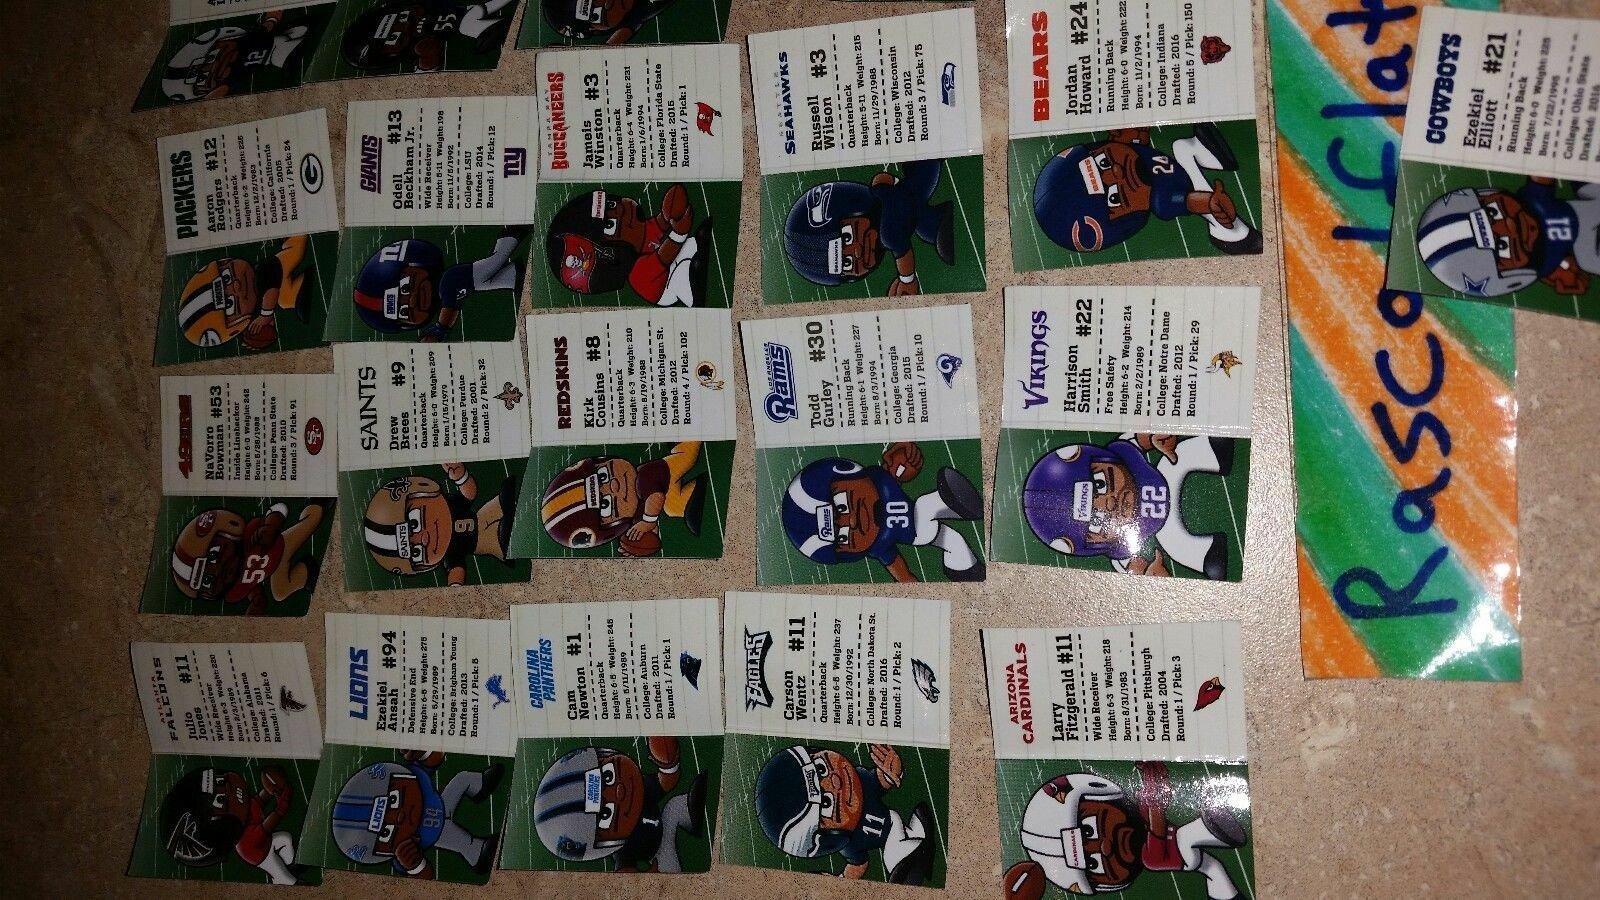 NFL FOOTBALL TEENYMATES SERIES 6 COMPLETE SET OF 32 PLAYER PROFILE CARDS!!! 2017 image 5